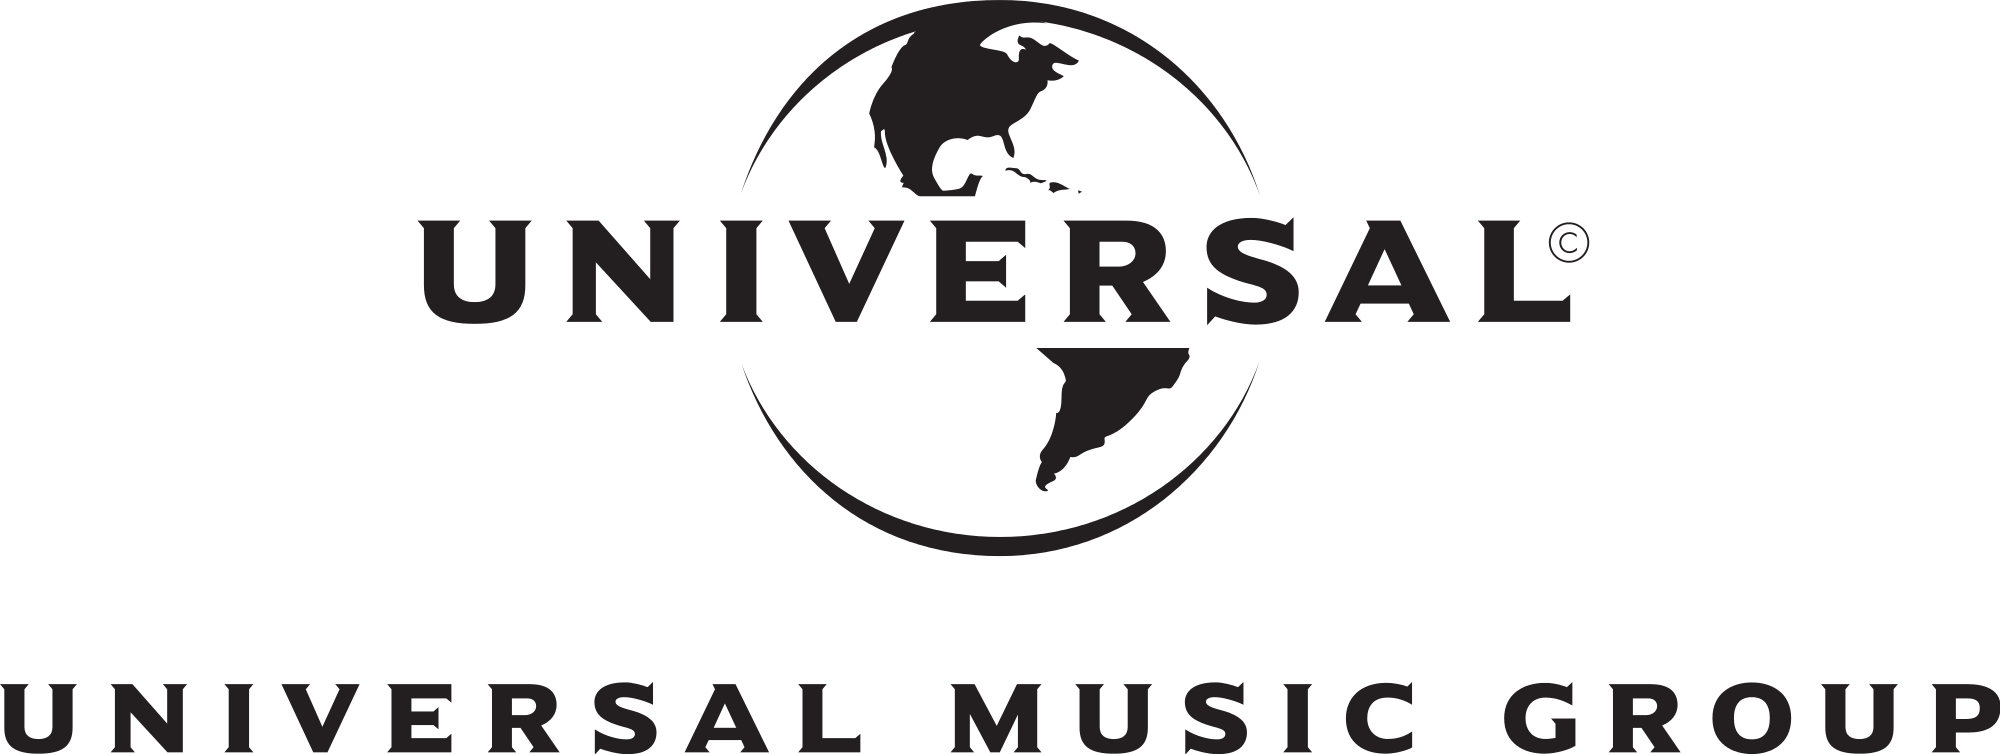 Universal-Music-Group.png